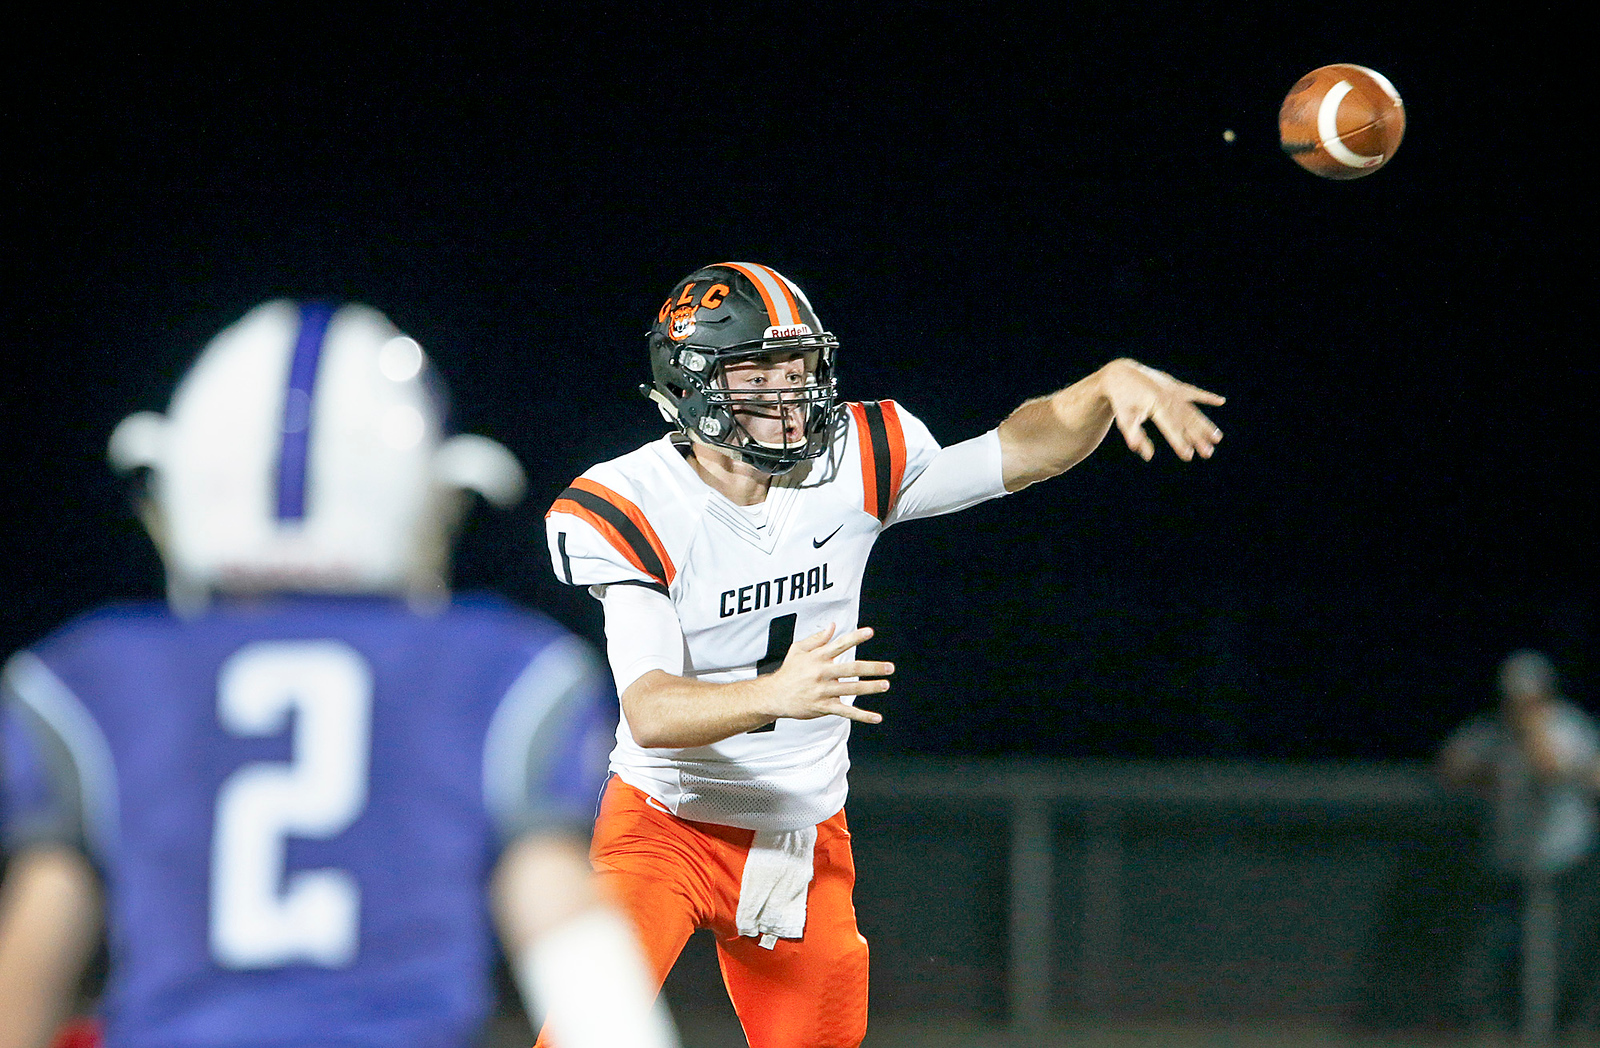 Jacob Staples (1) from Crystal Lake Central passes during the second quarter of their game against Hampshire on Friday, September 22, 2017, in Hampshire, Illinois. John Konstantaras photo for Shaw Media